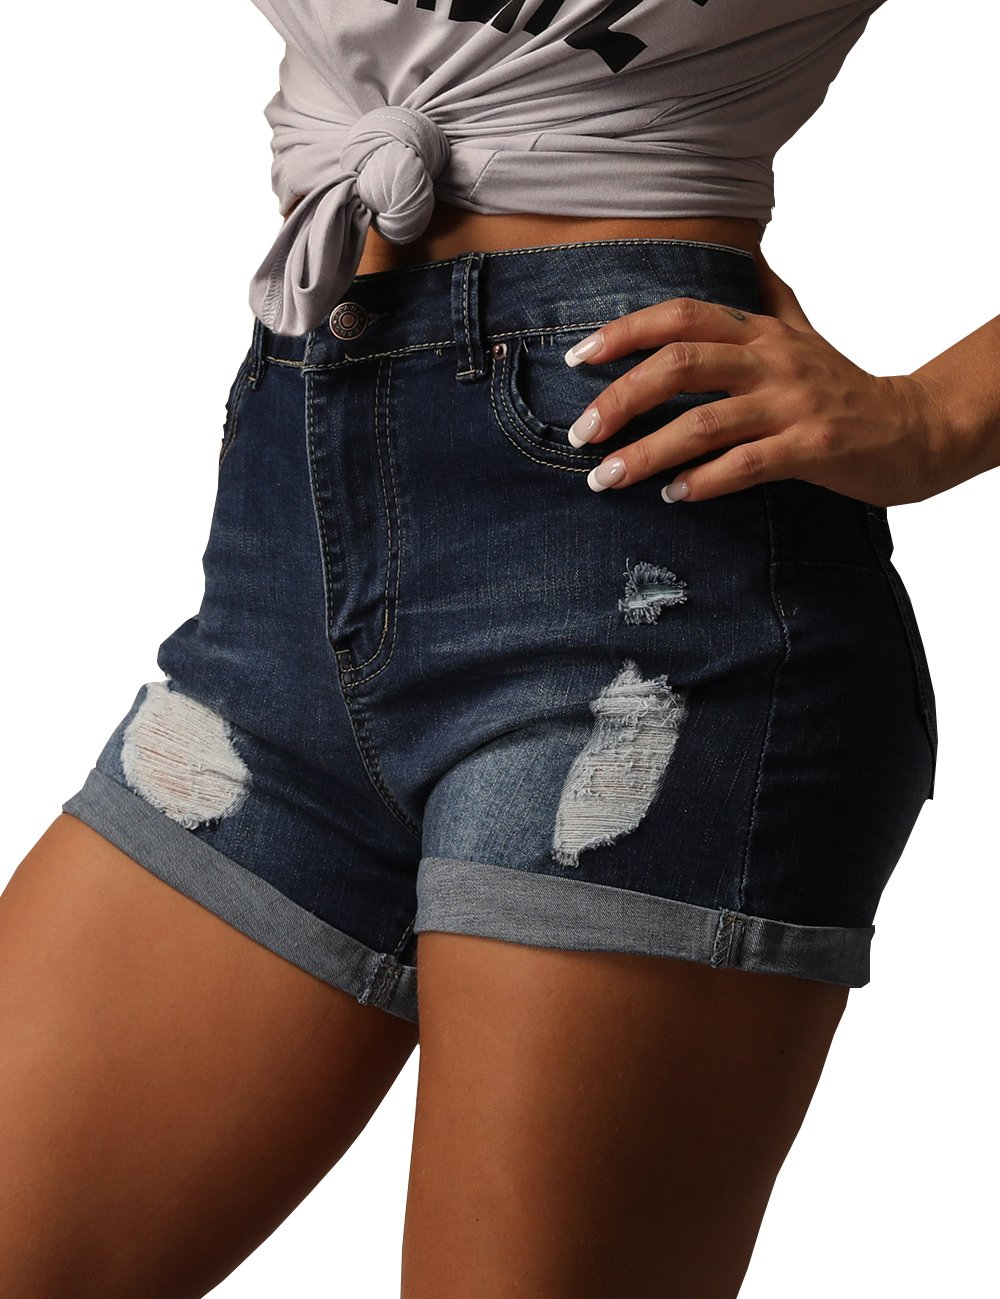 Women's Summer Shorts Casual High Waisted Distressed Ripped Stretch Denim Shorts Jeans M DarkBlue